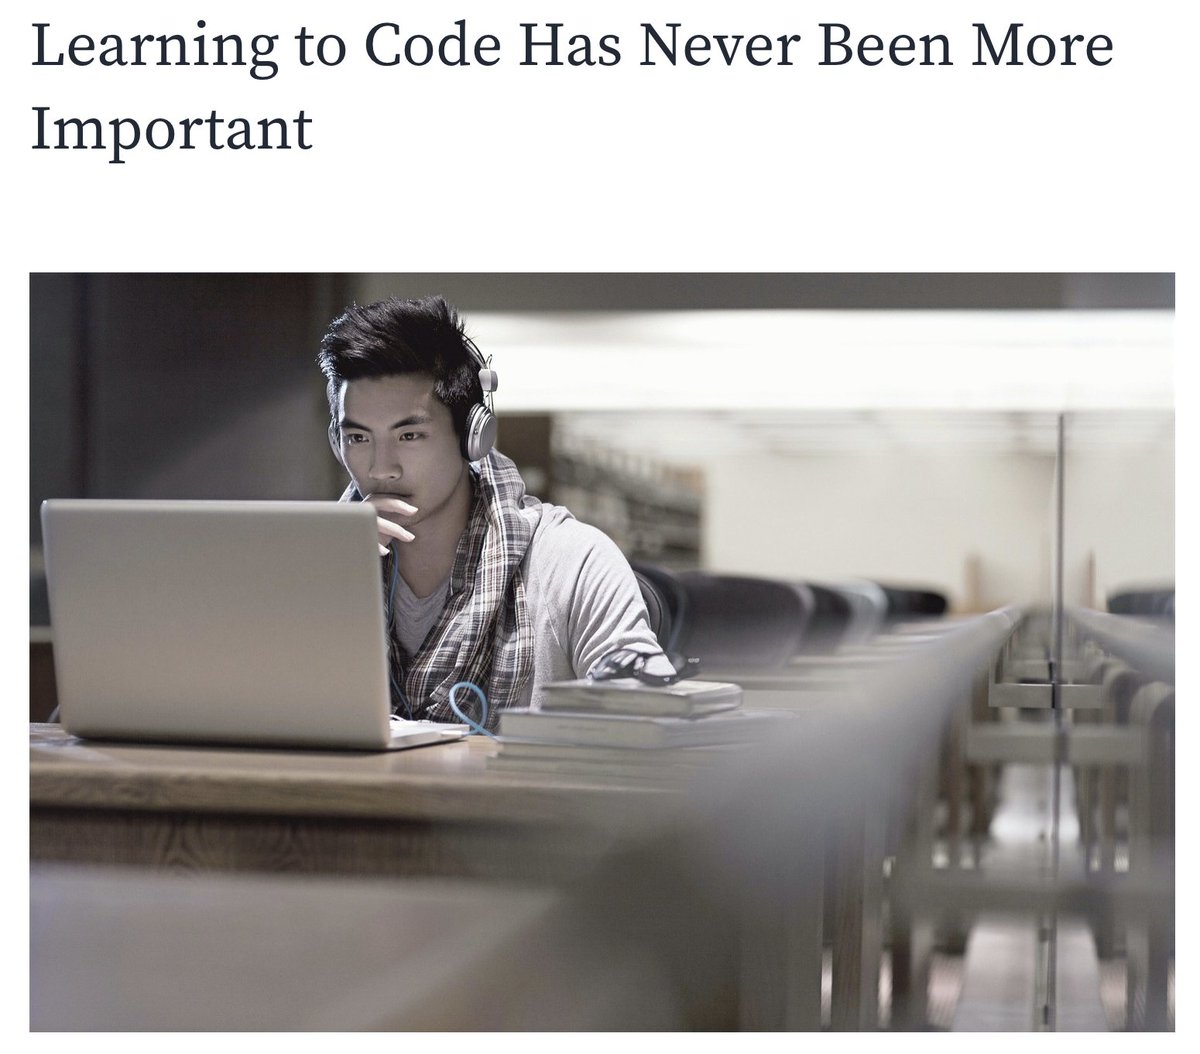 Claim 2: Artificial Intelligence Will Make Coders Redundant  TRUE or FALSE❓  Read our verdicts on these claims 👇  https://t.co/N8VMWmRkXW  #learntocode #learningtocode #learnPython #codingforkids #education #future #futureskills #christmas #activitiesforkid https://t.co/xFfNcGOaRV